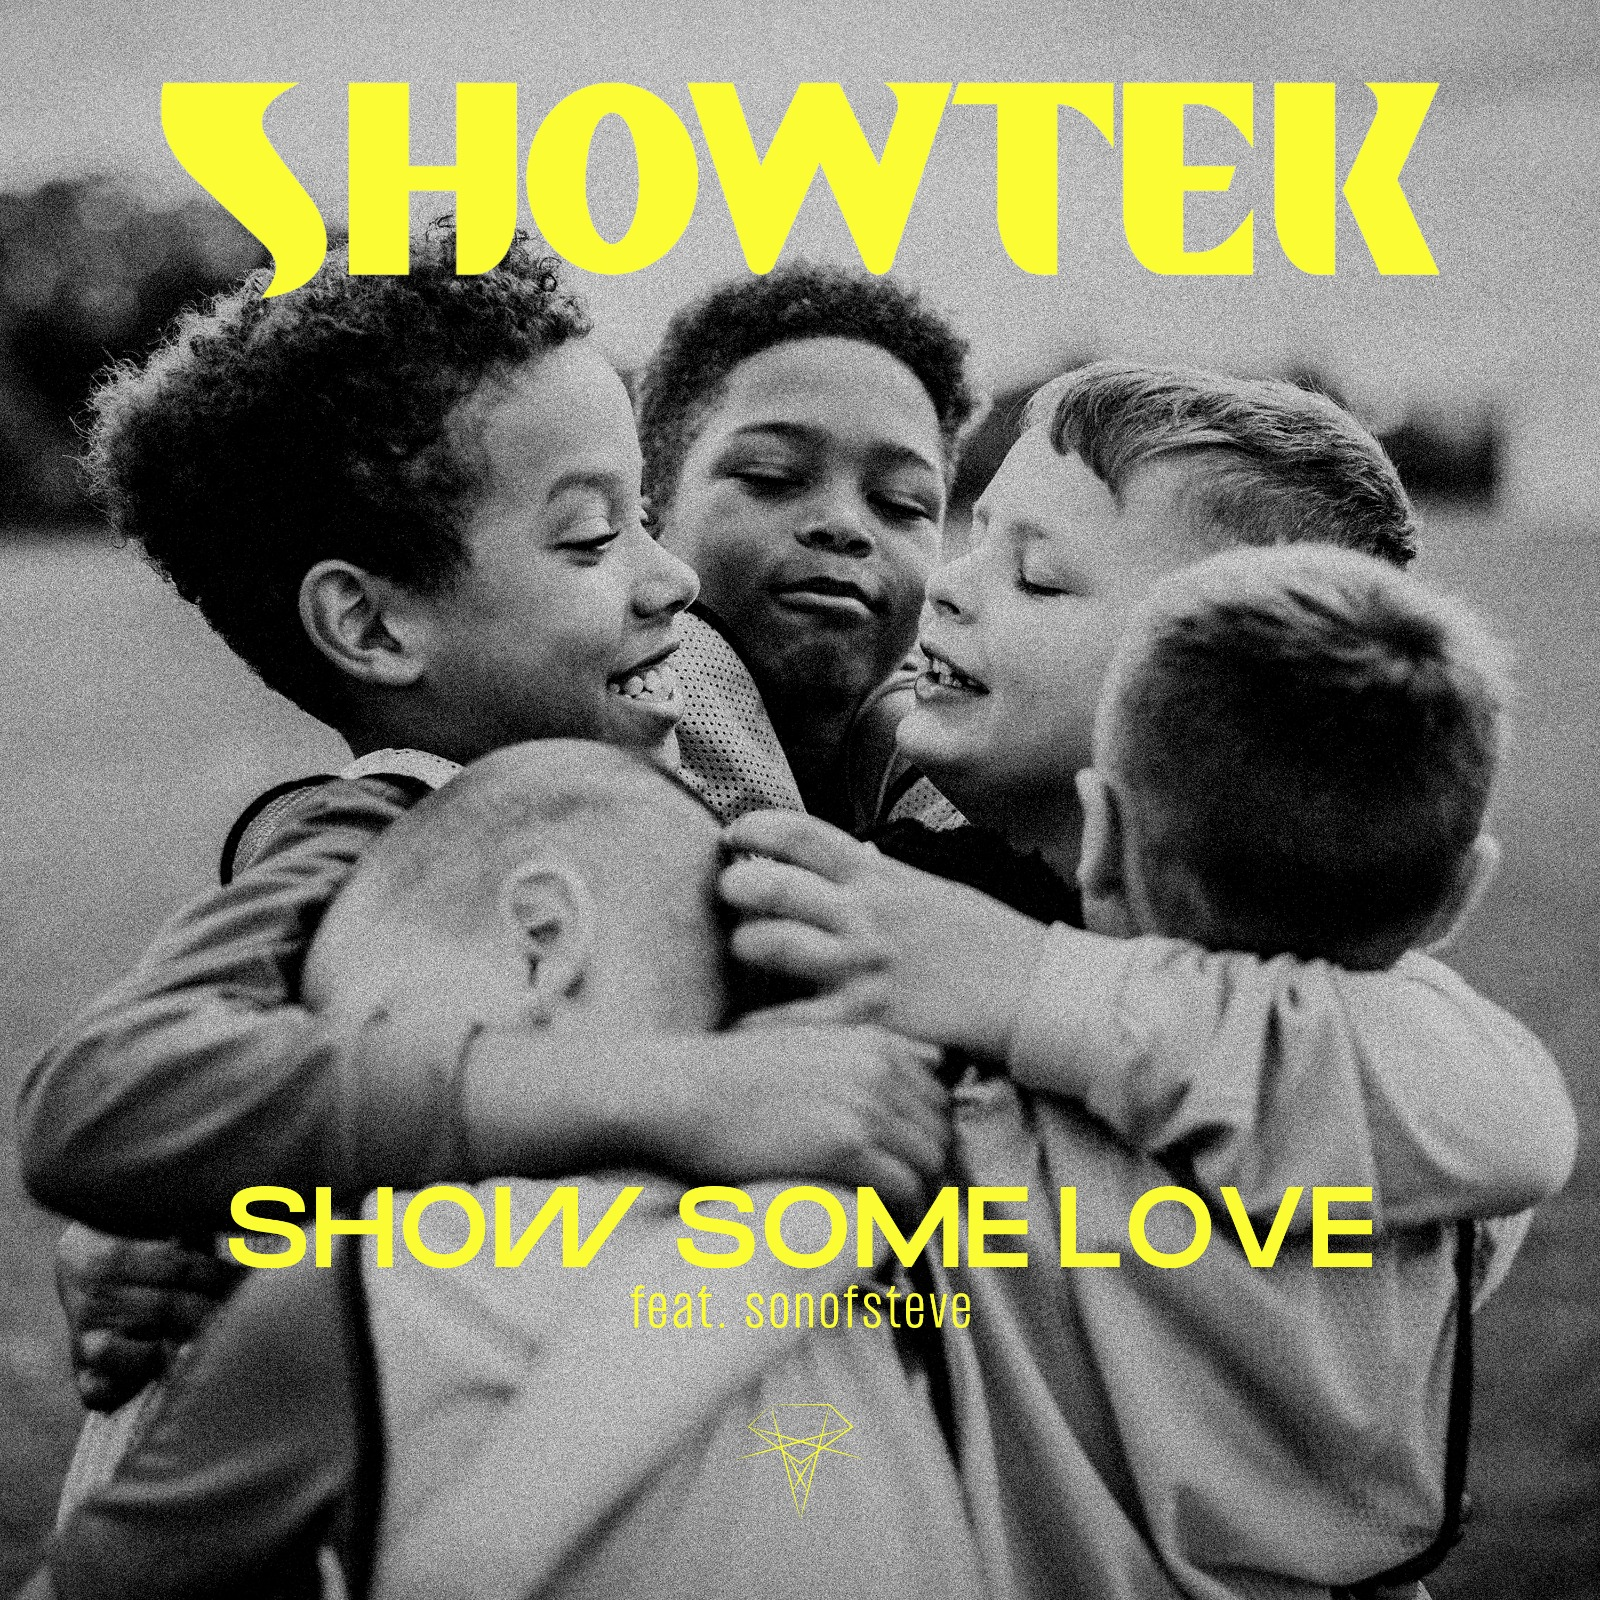 """Showtek Spreads Positivity in Tough Times with New Single """"Show Some Love"""" ft. sonofsteve. Out on Skink"""